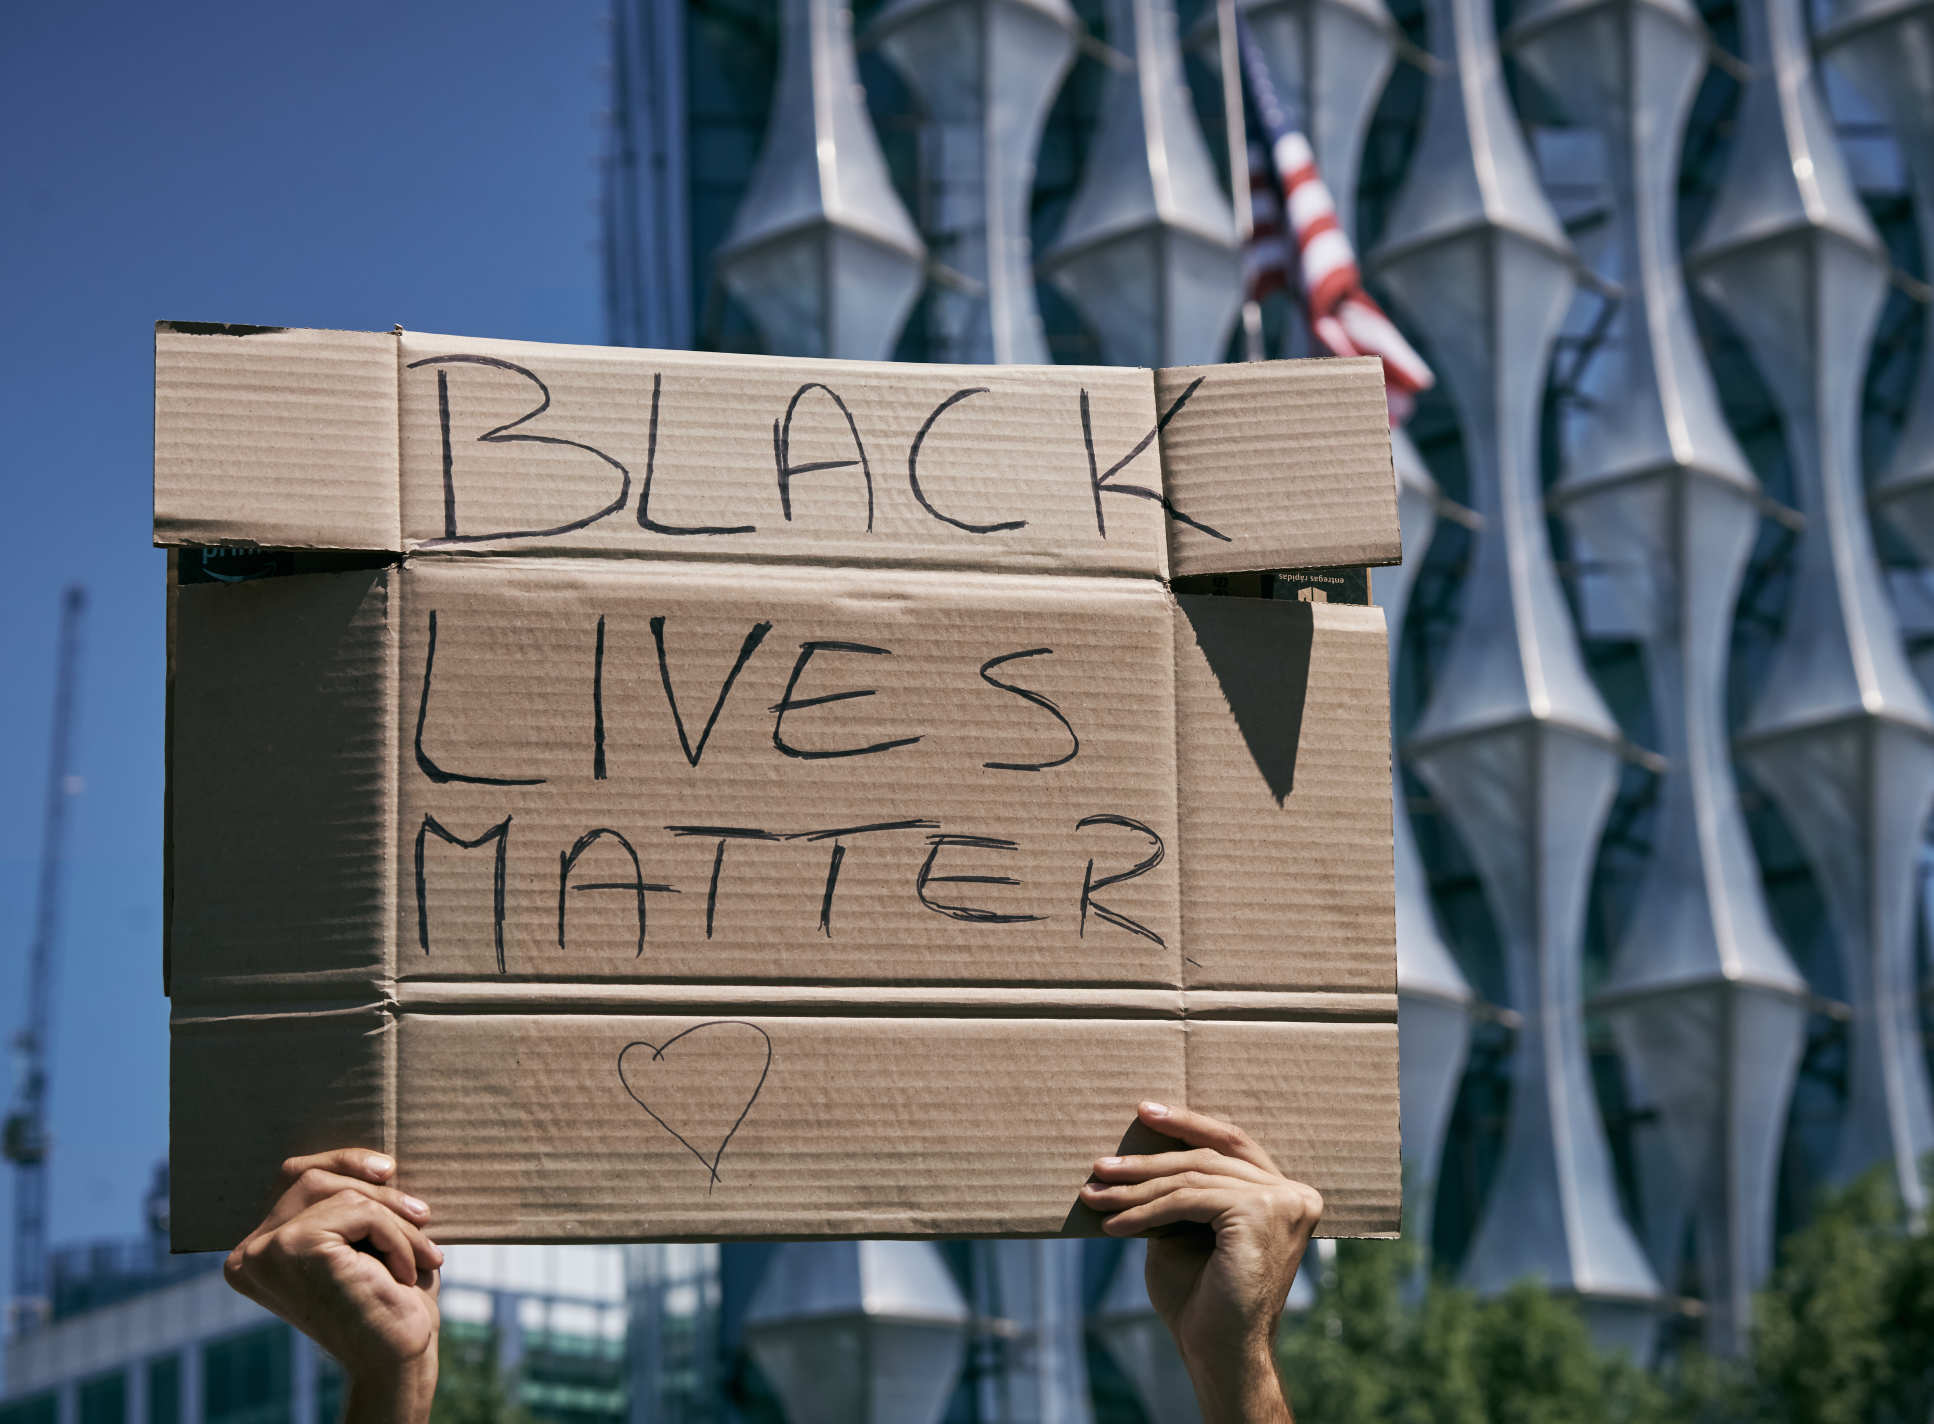 person holds up cardboard which says 'Black Lives Matter'